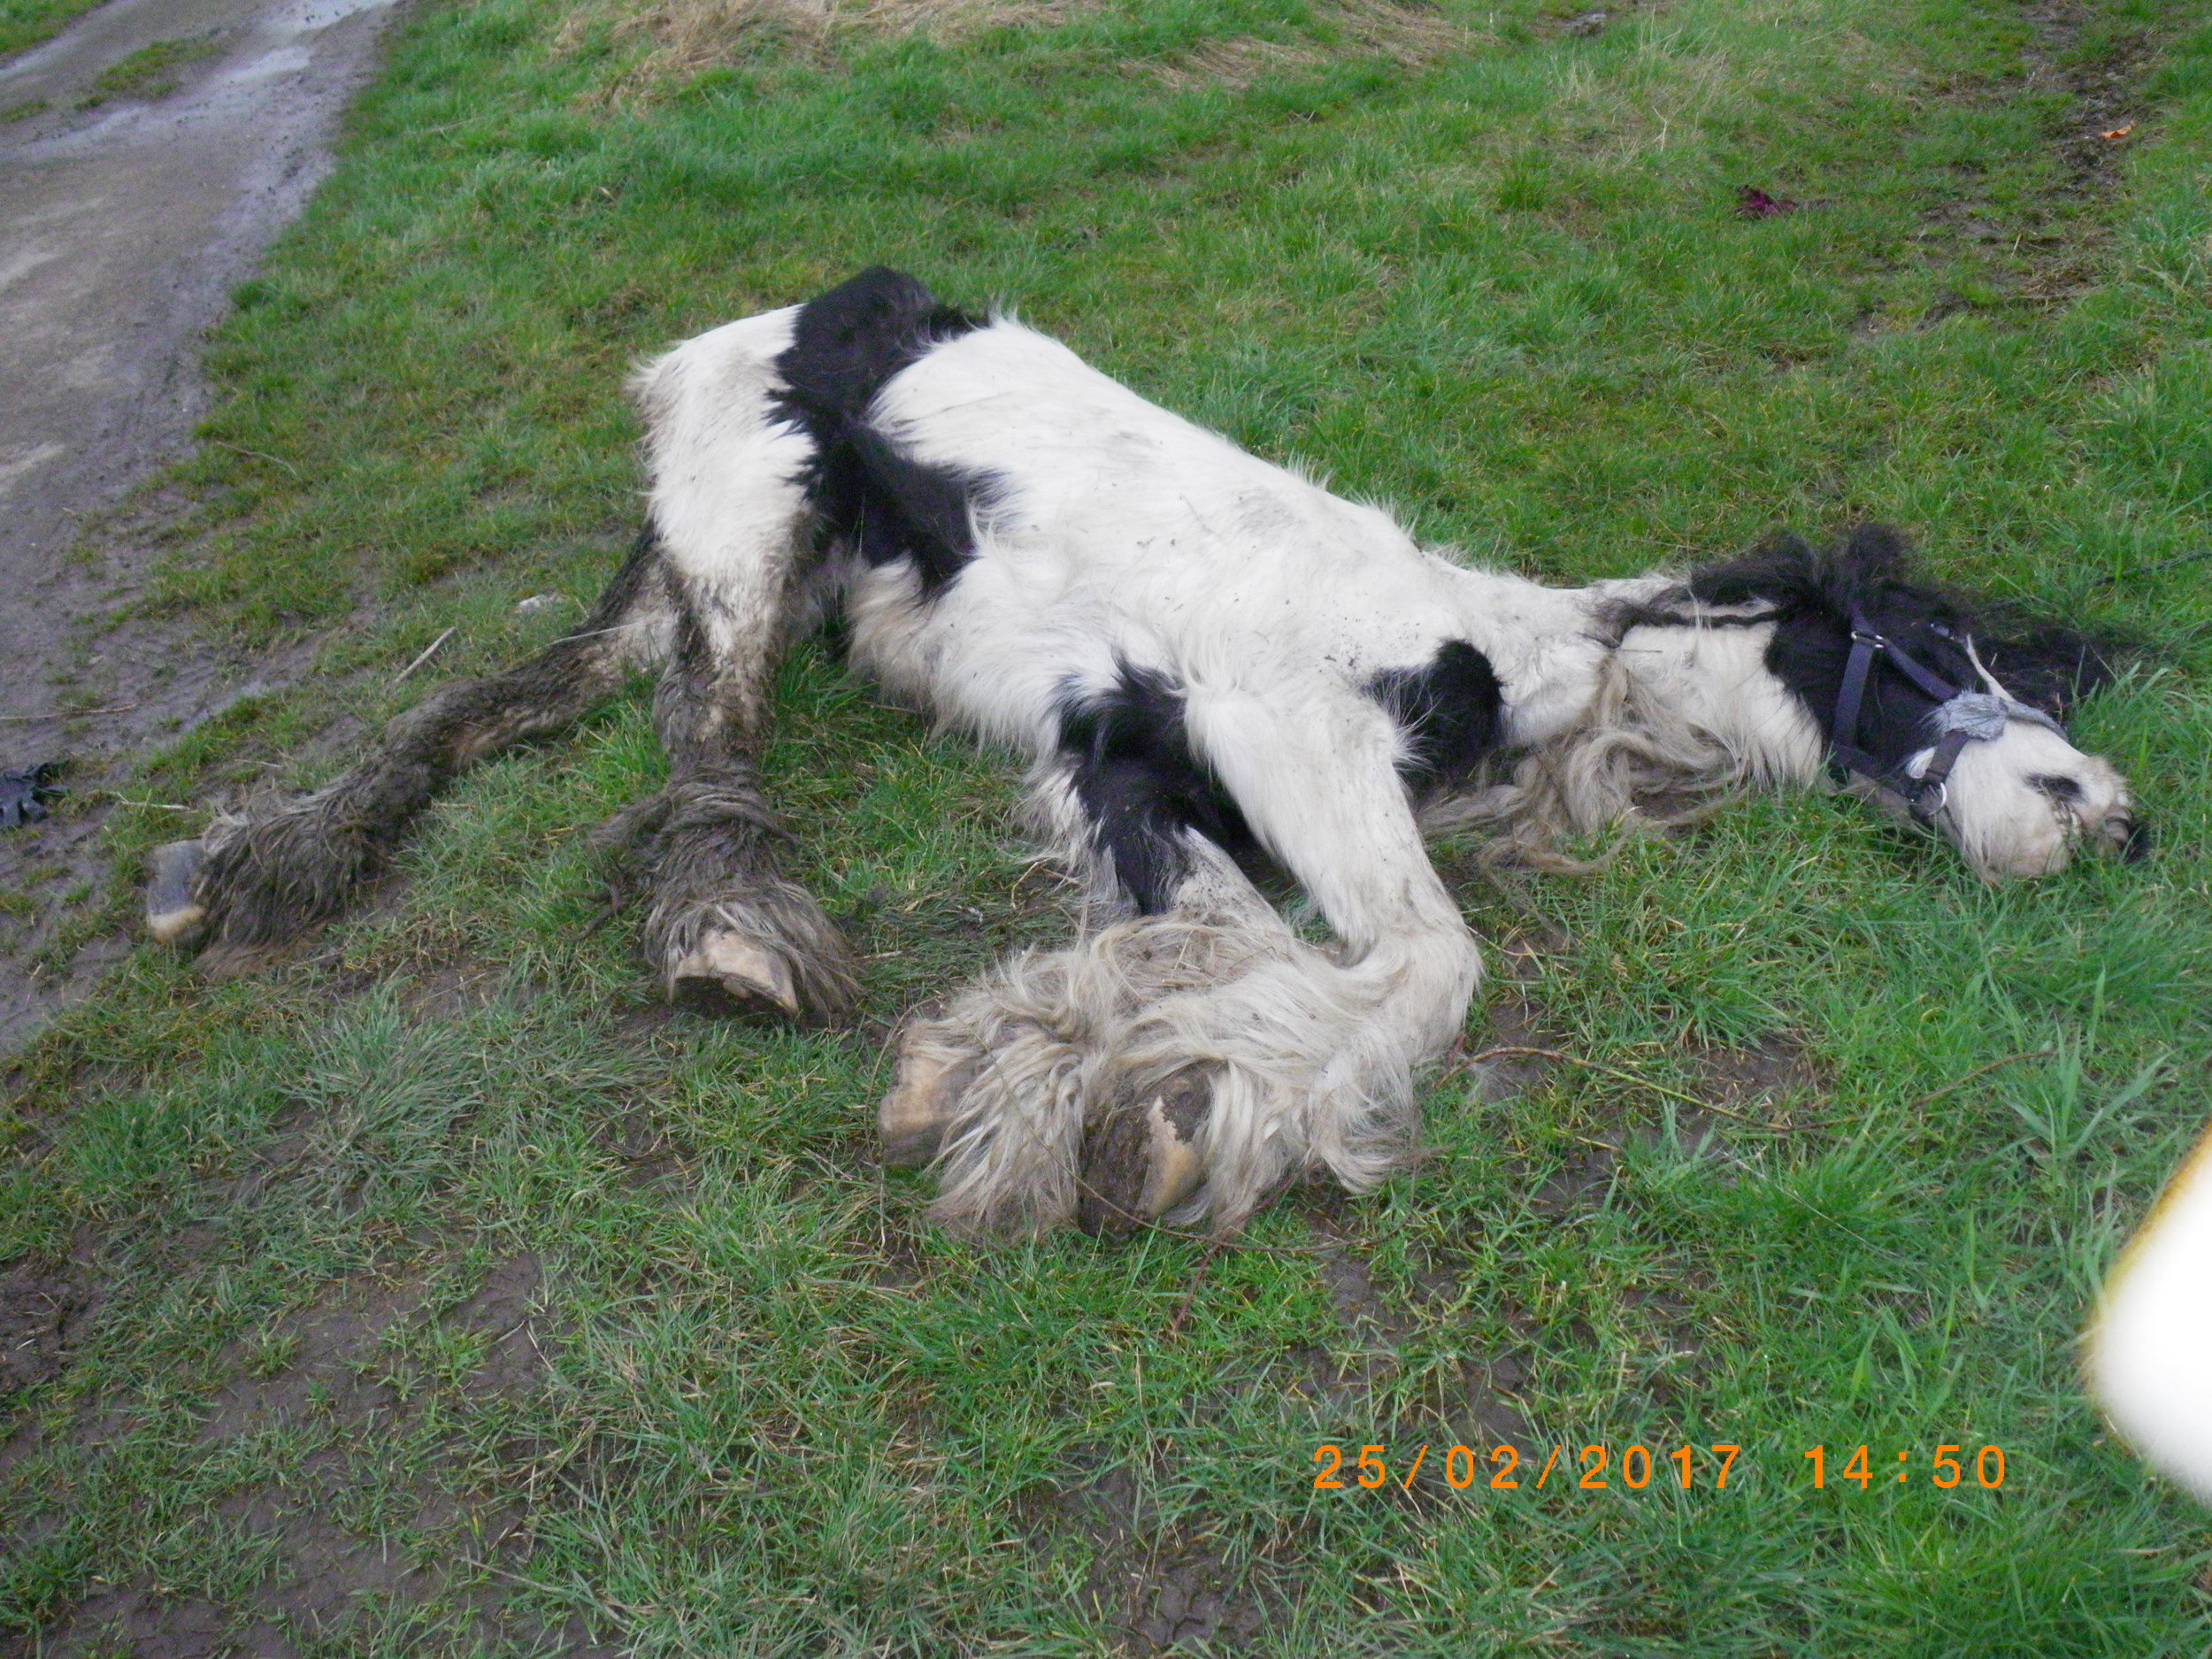 The horse had been tied to a nearby fence (Pic: RSPCA)